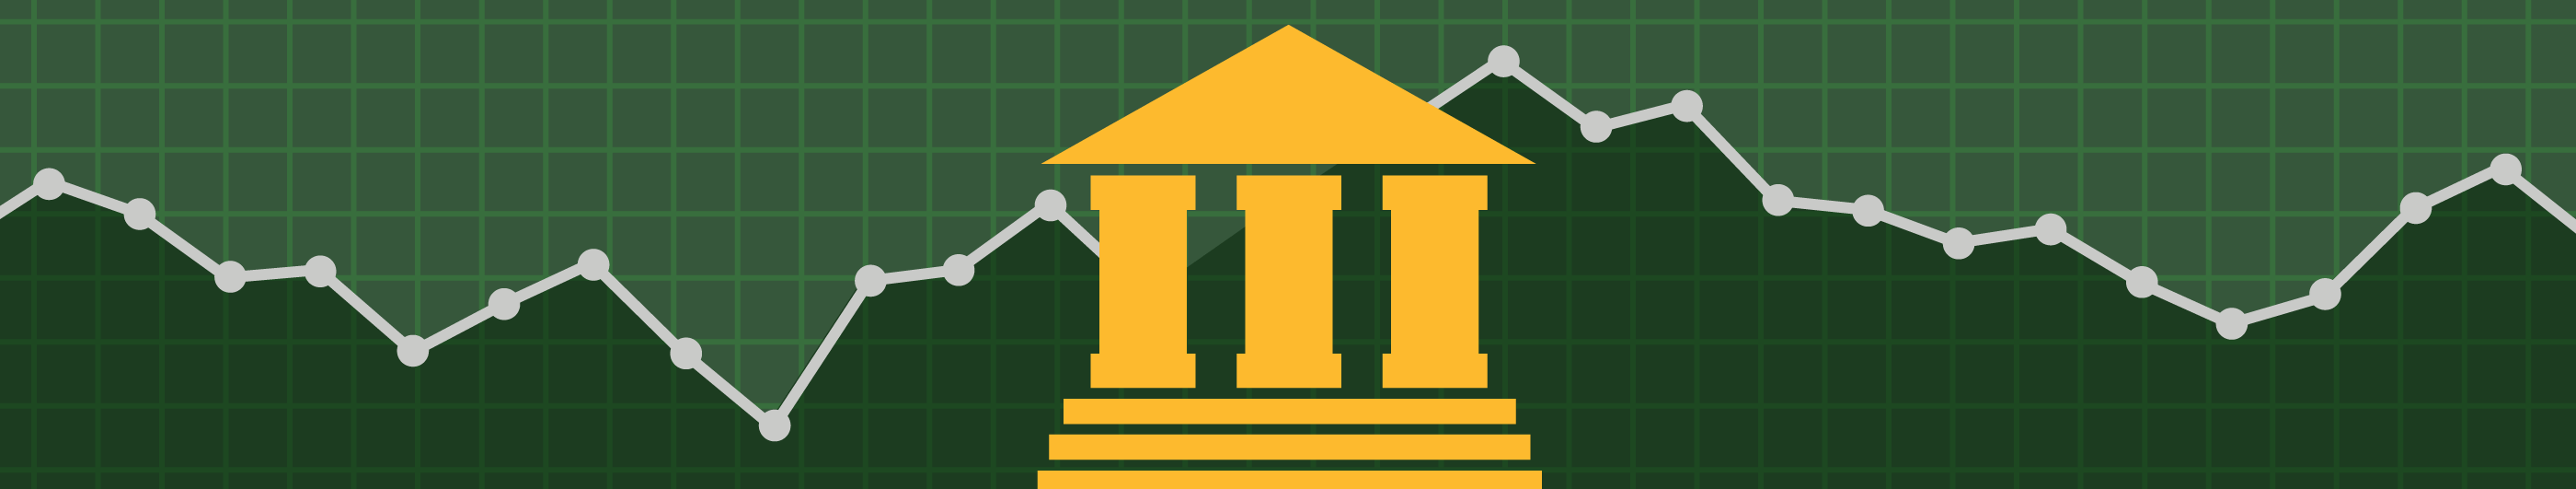 illustration of yellow government building with green background